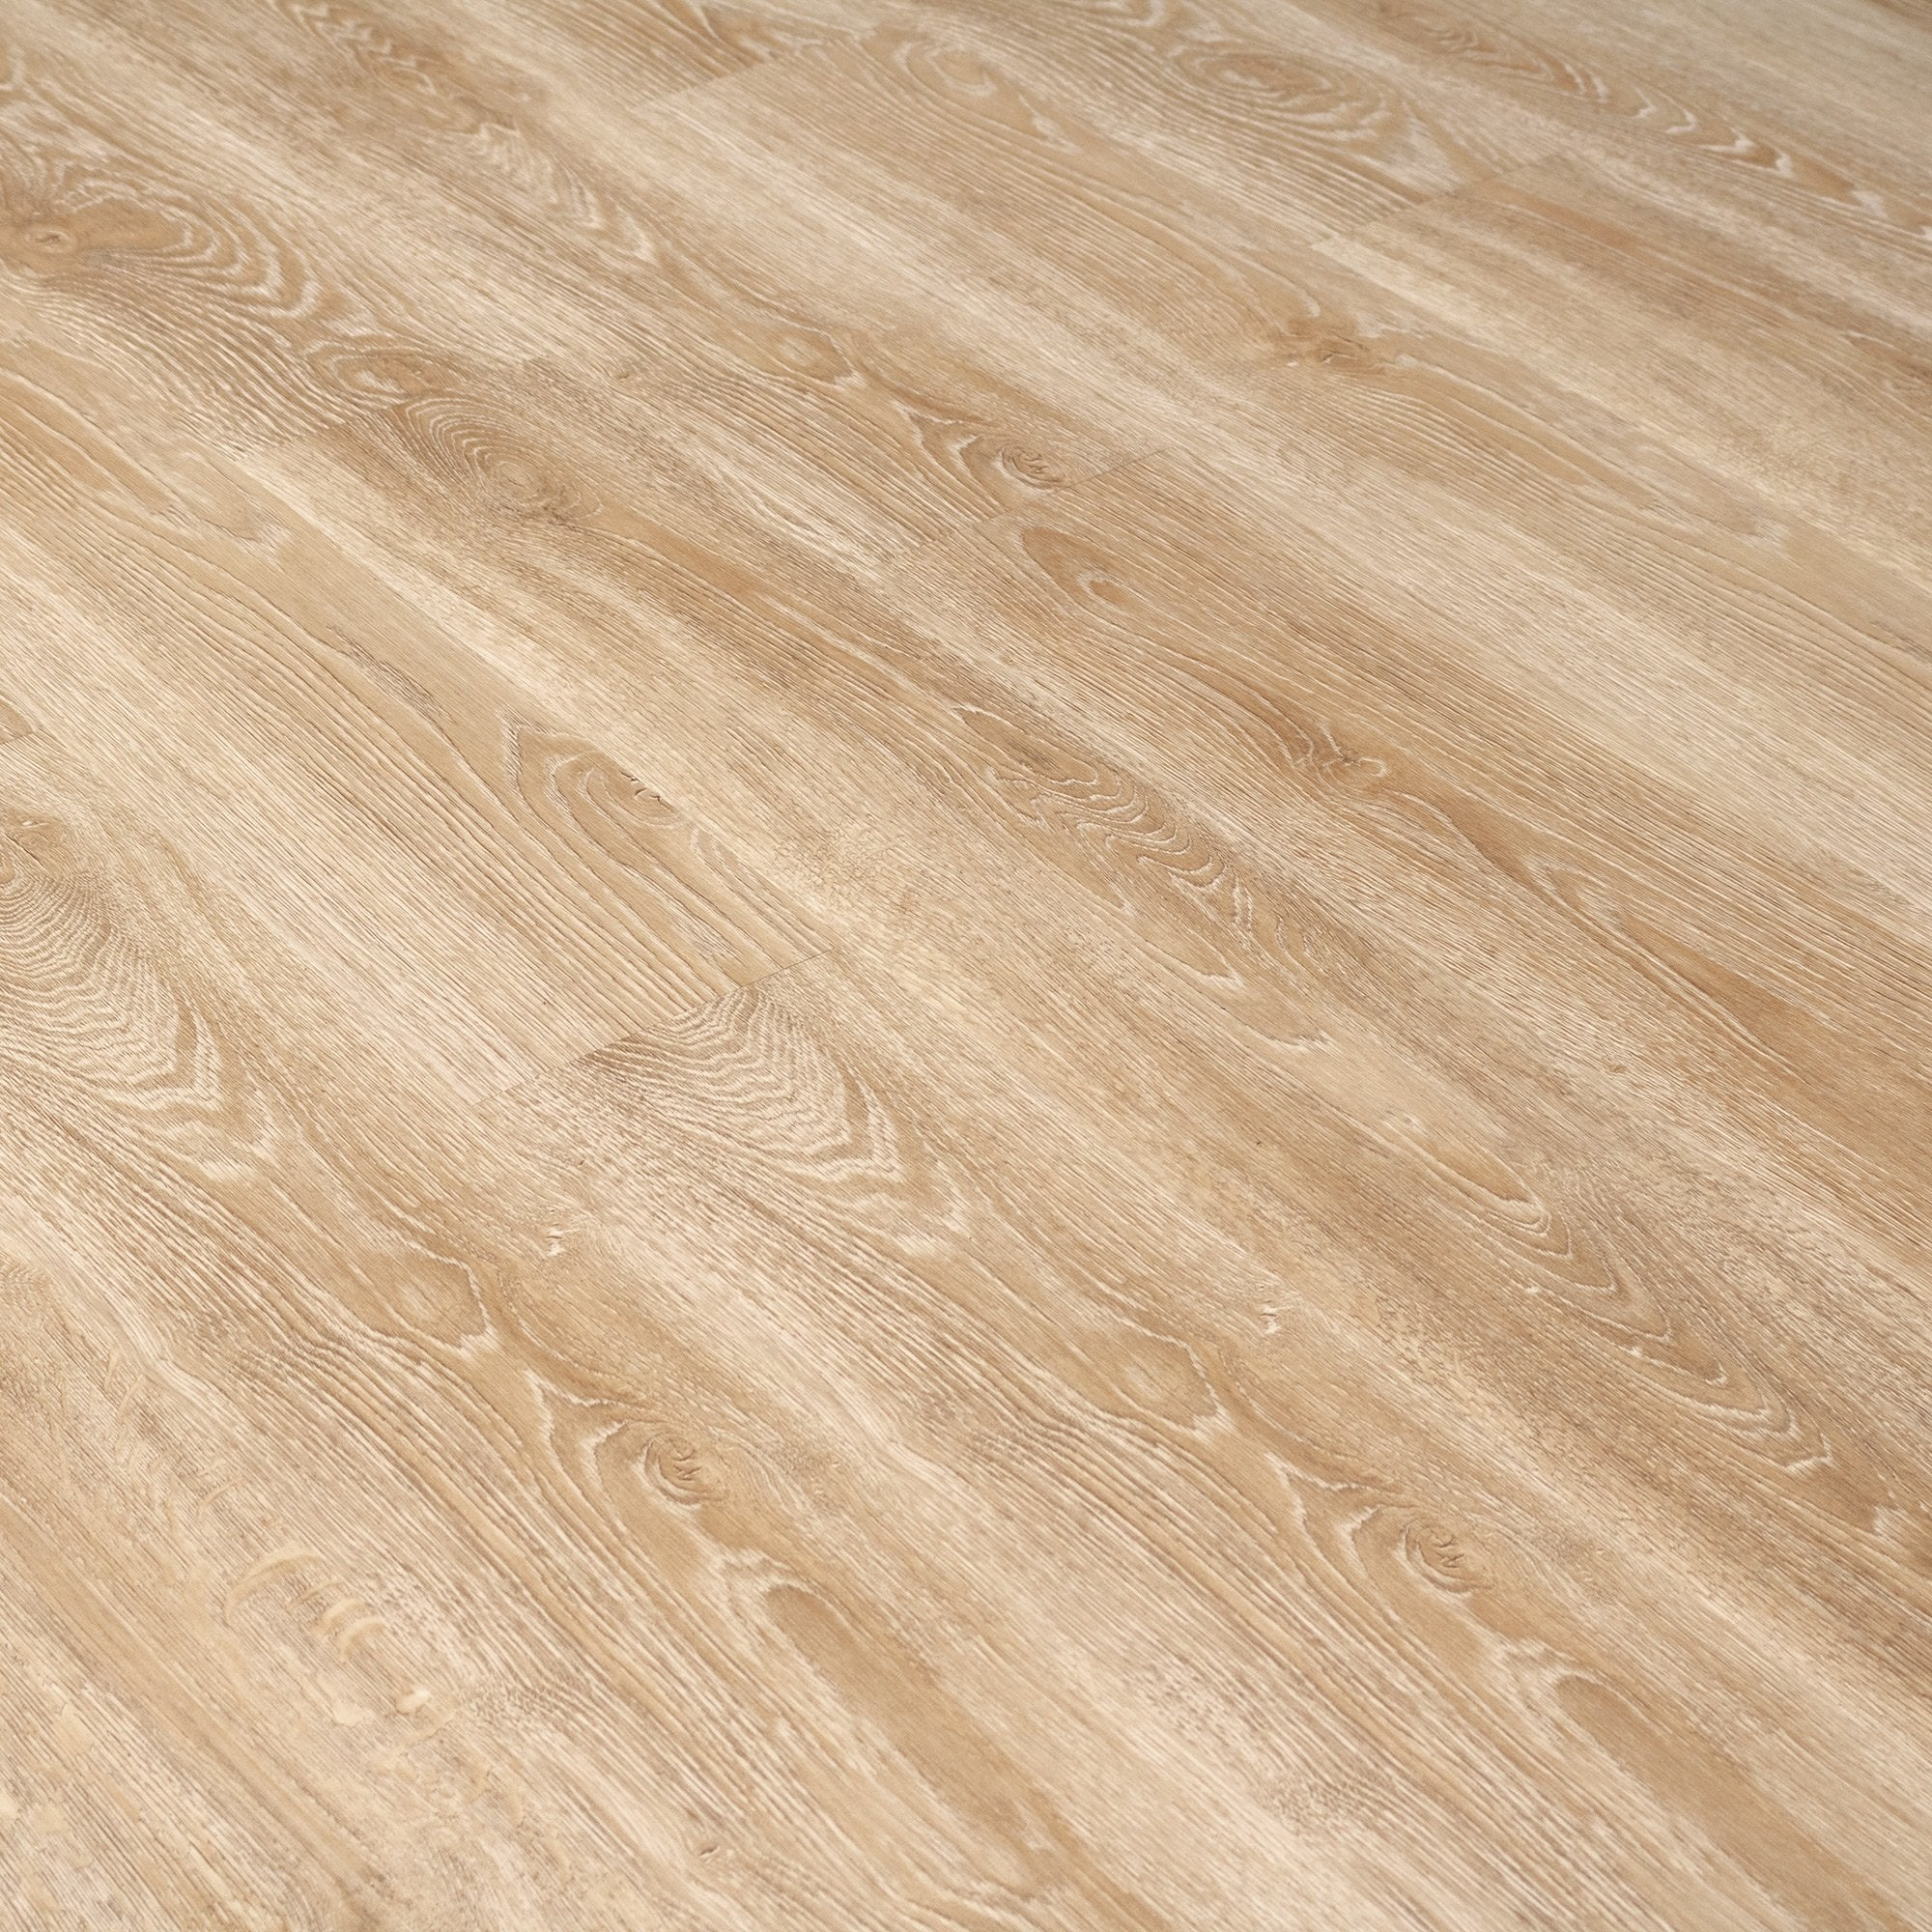 Liberty Floors Premium Click 4 2mm Denver Oak Waterproof Luxury